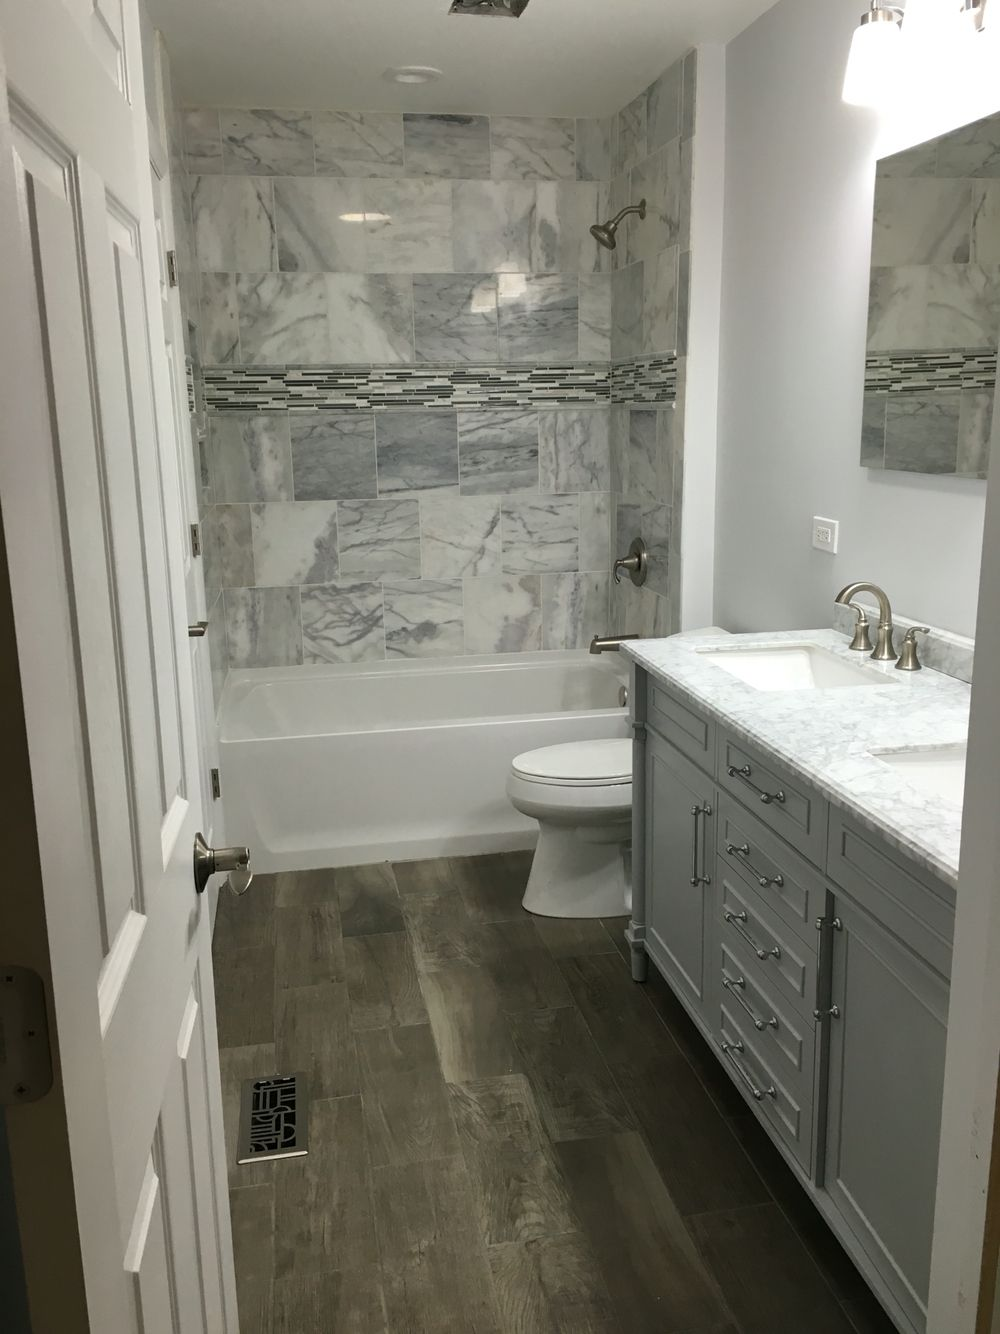 Bathroom remodel bath works small full bathroom diy - Small full bathroom remodel ideas ...